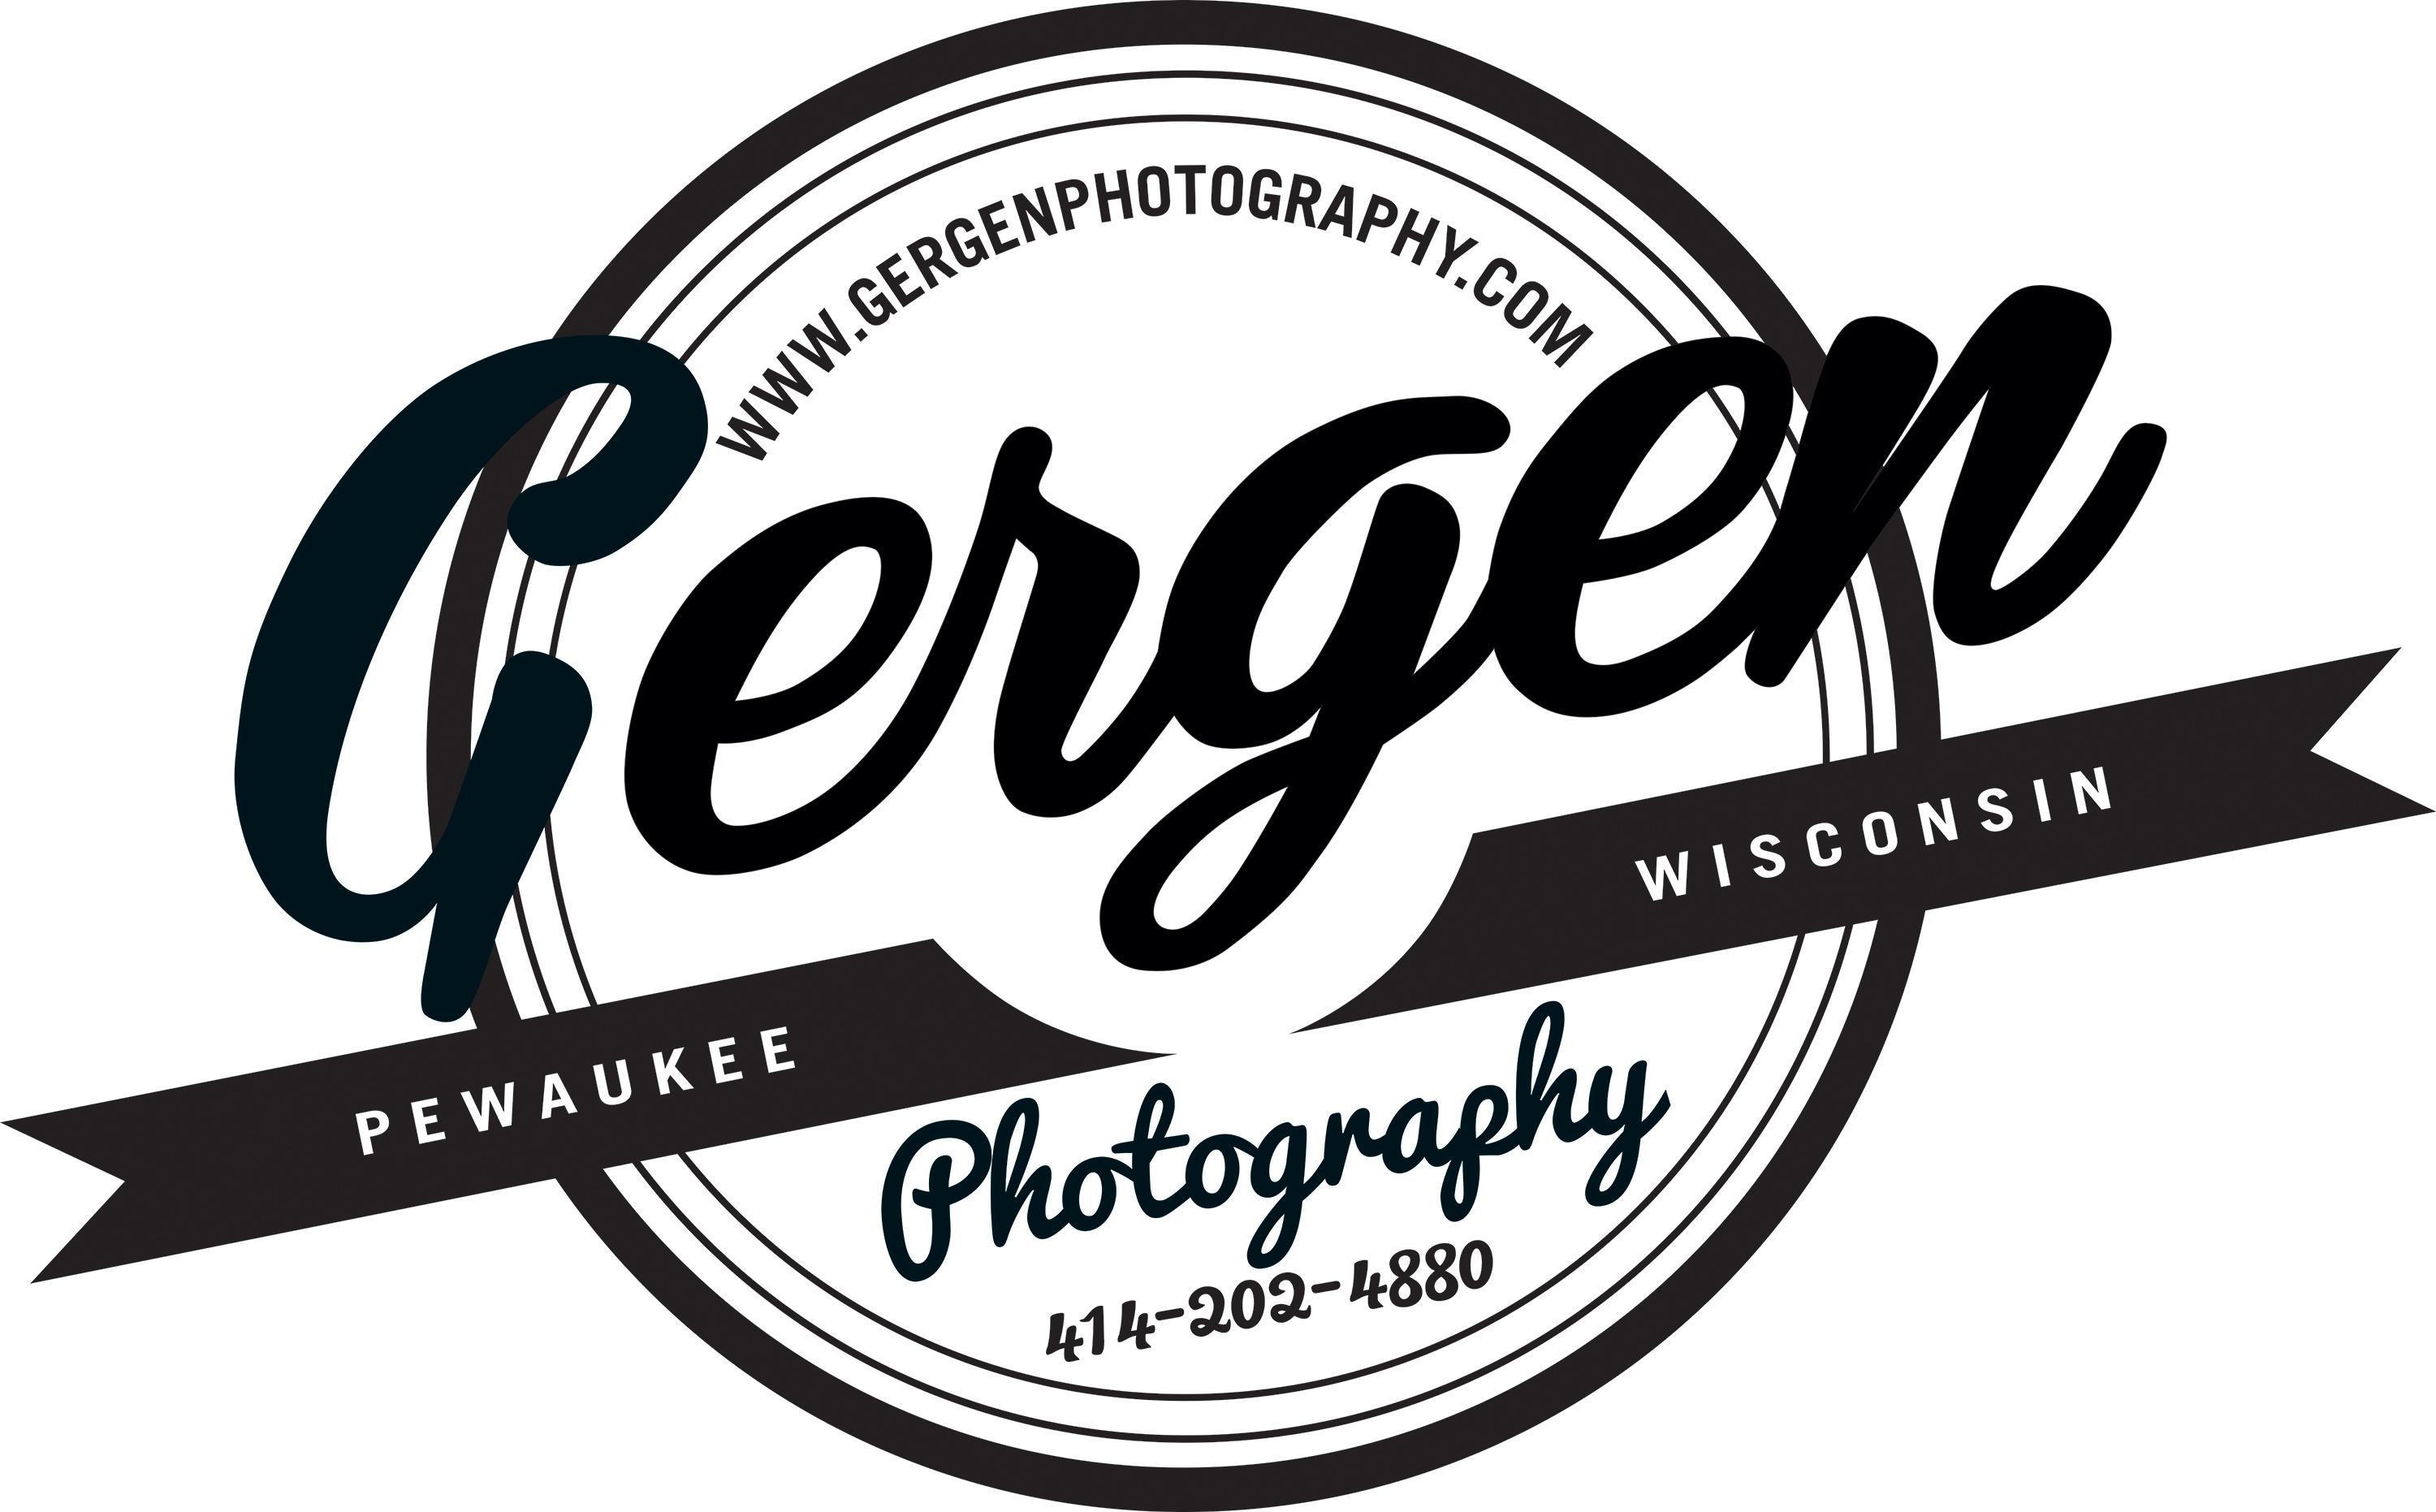 jan 9, 2017 headshot night @ gergen photography at mke studio